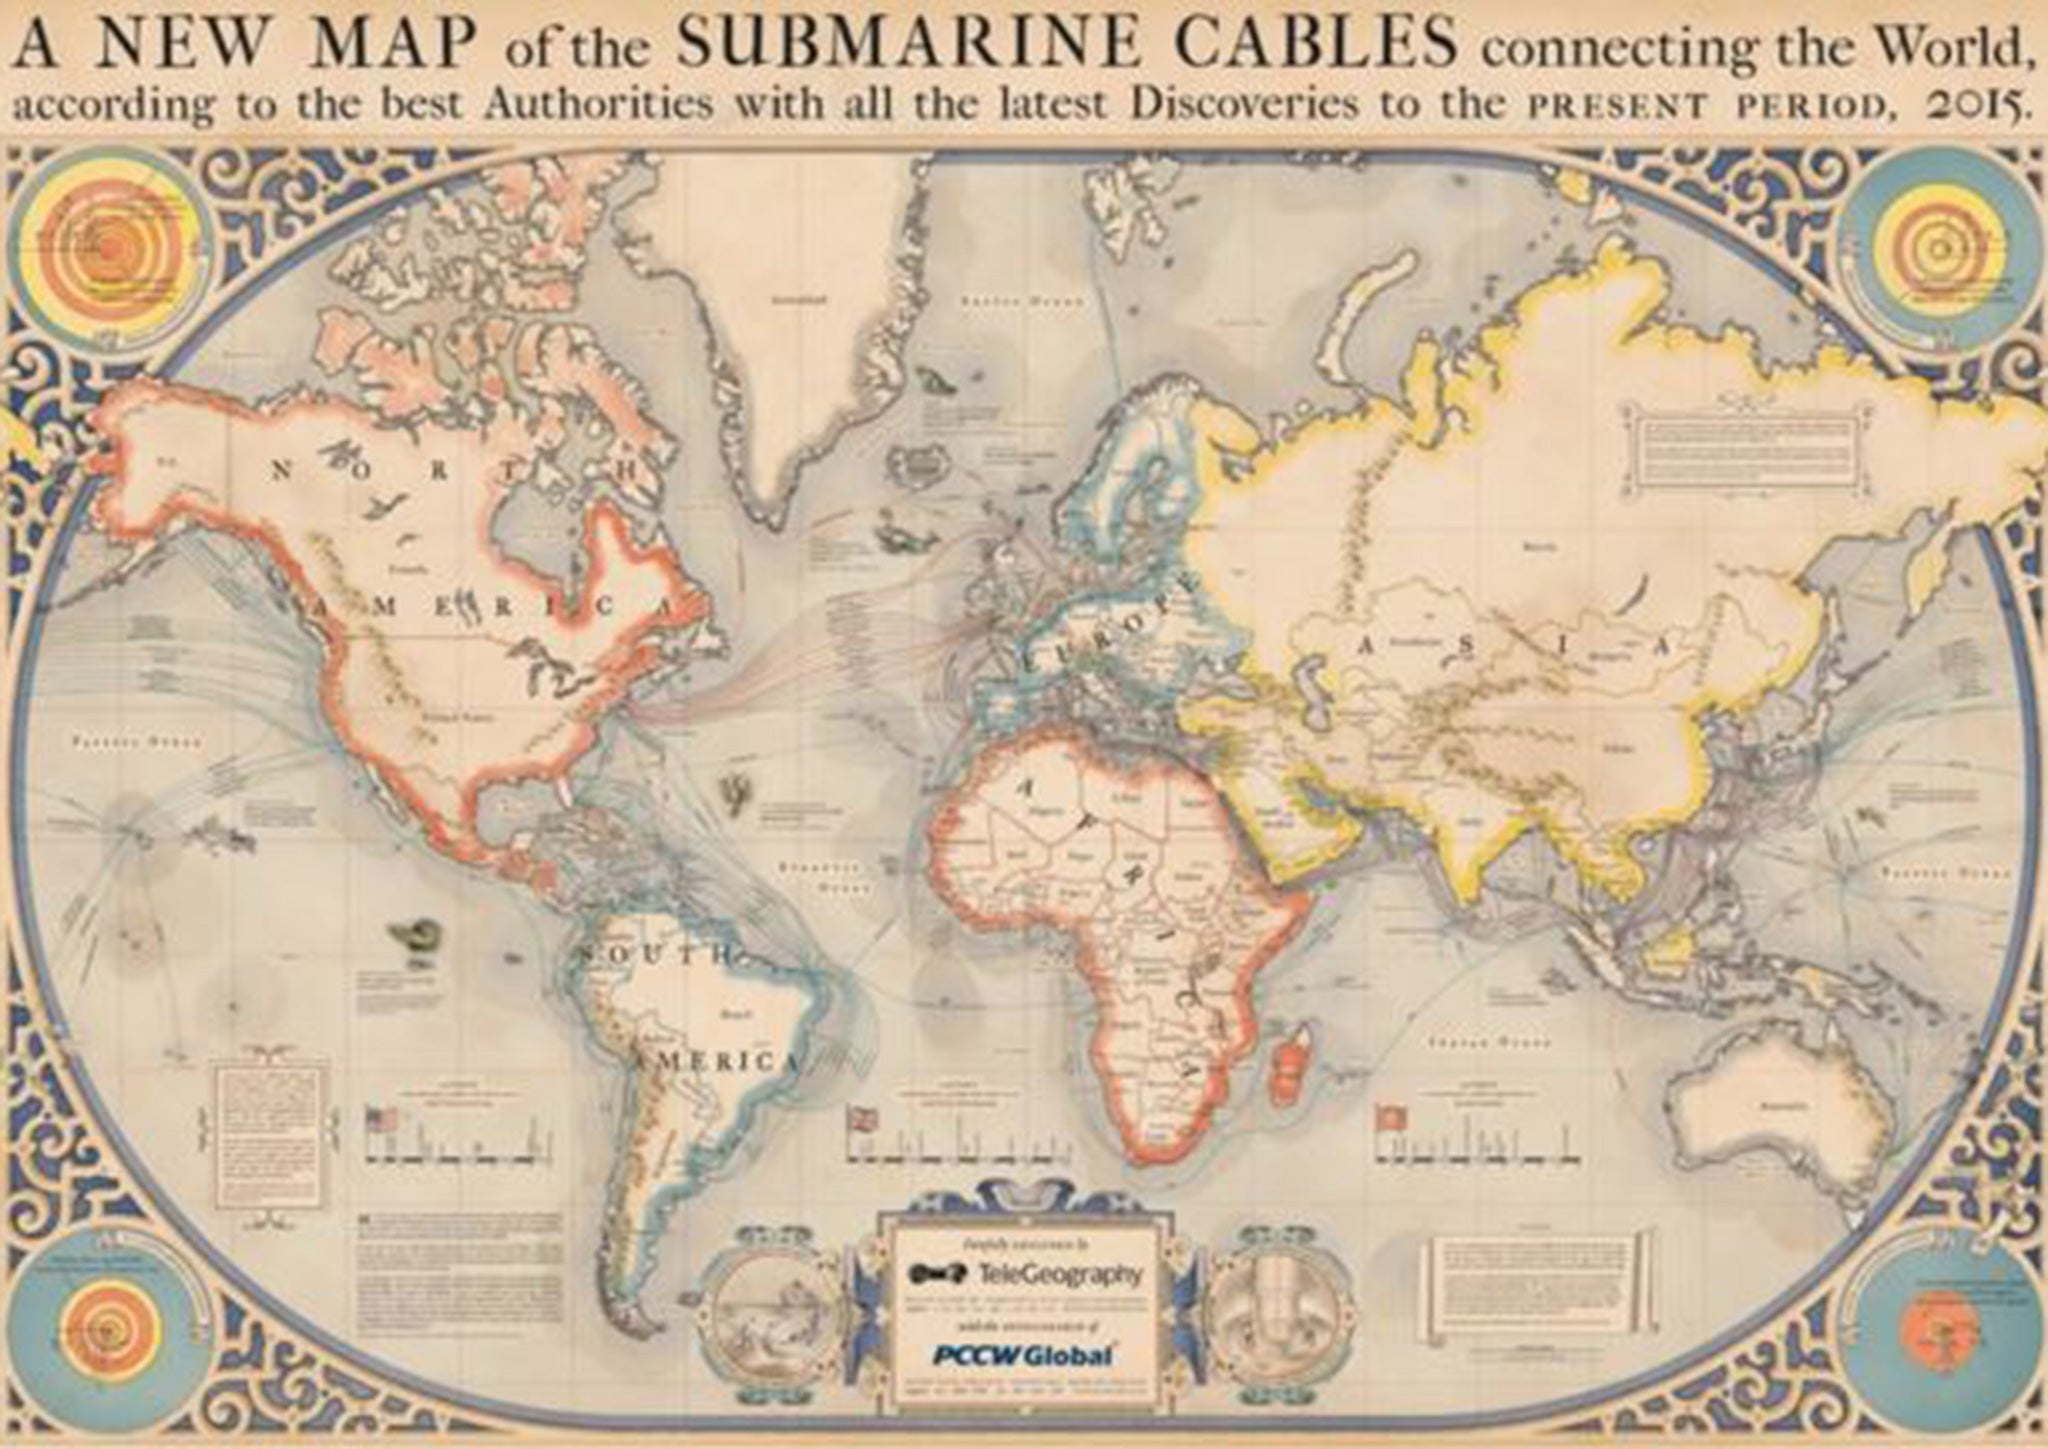 Everything you need to know about the undersea cables that power